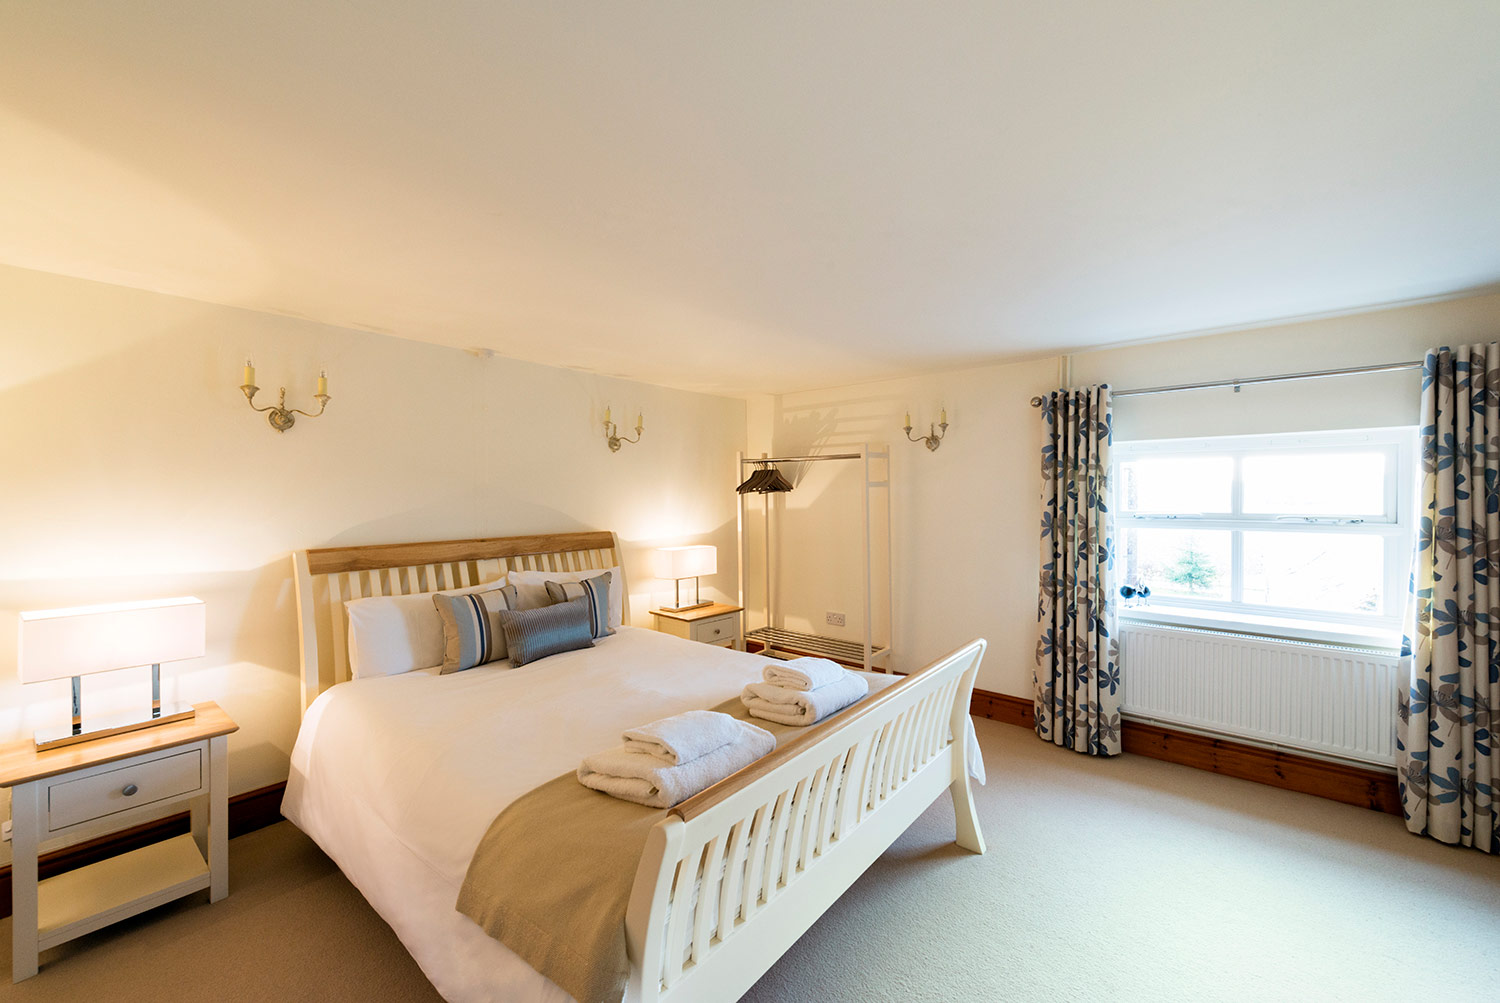 Private accommodation at Upper Rectory Farm Cottages in central UK